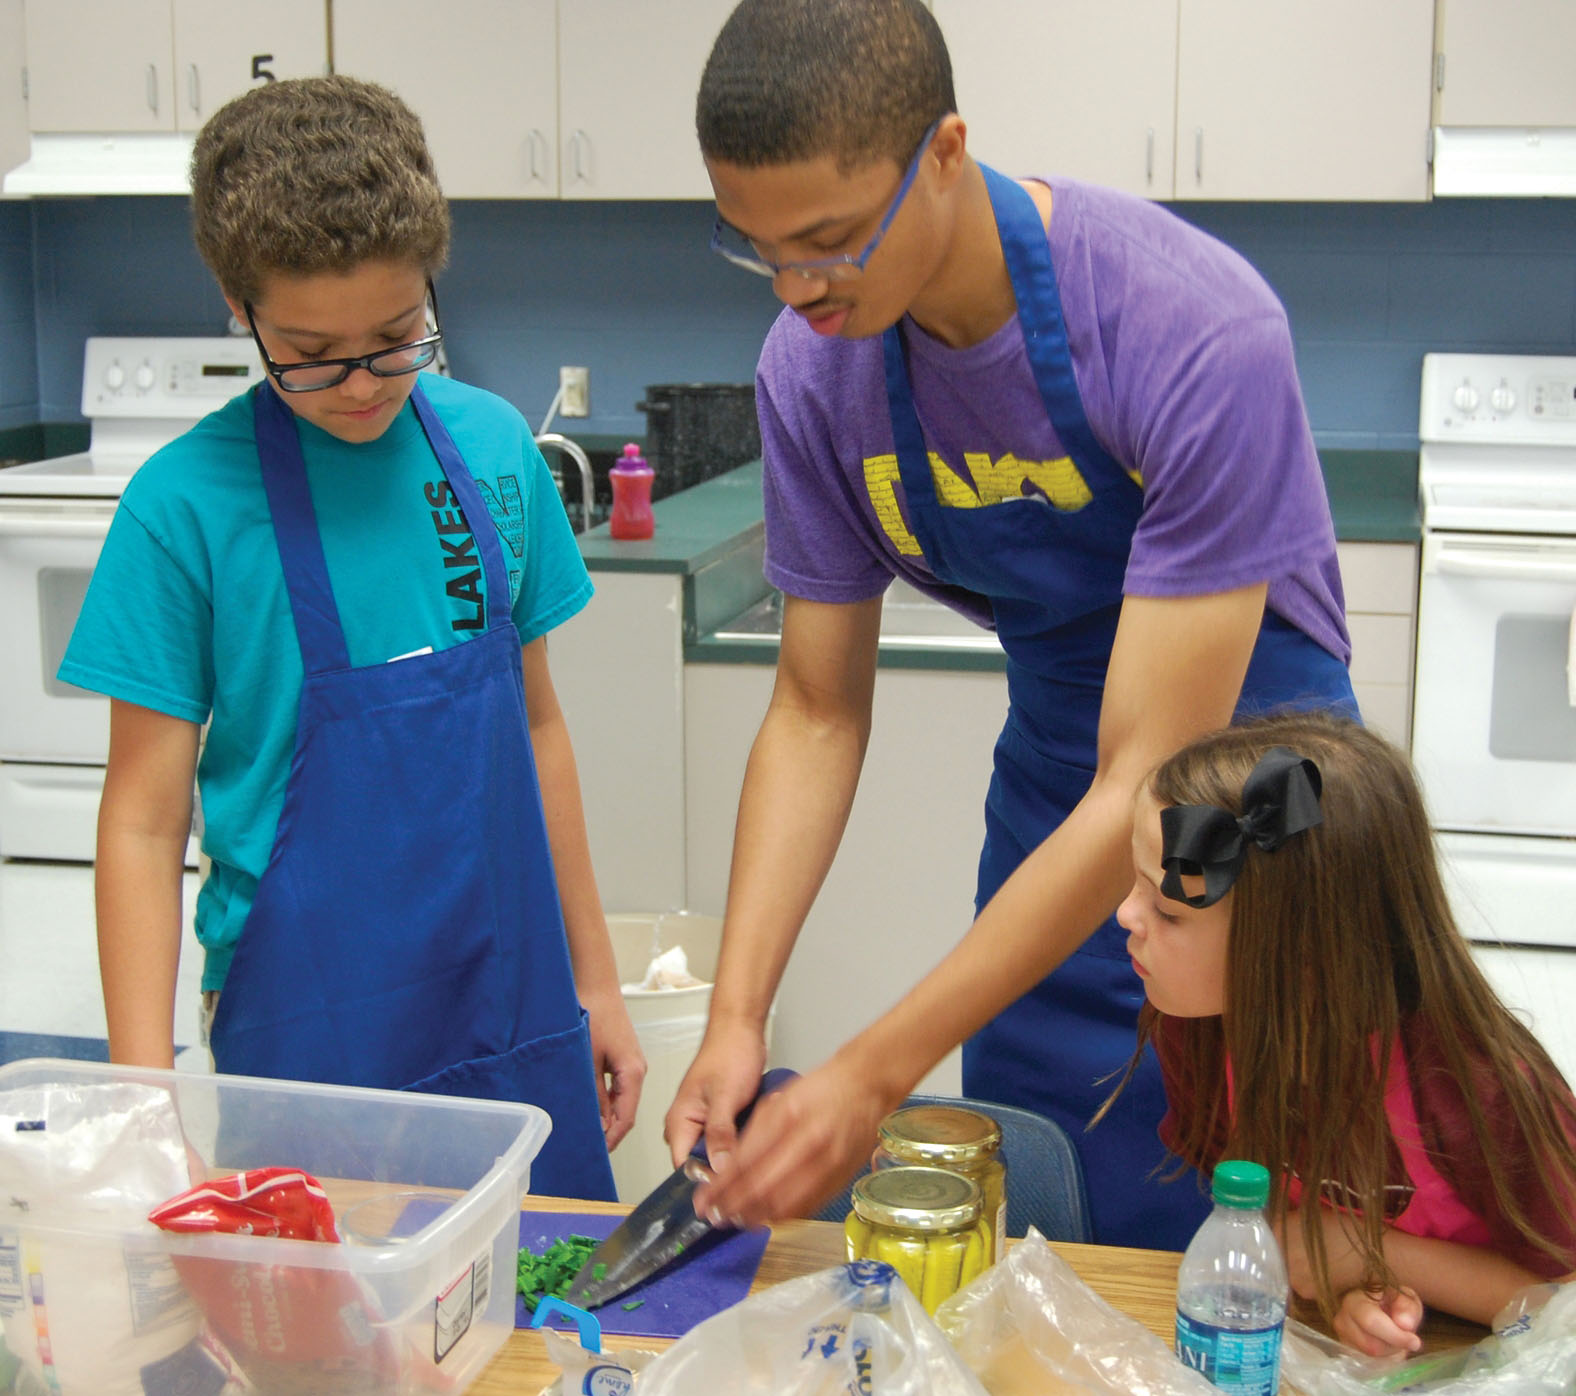 CCISD students Colt Schultz, Ihsaan Muhammod and Avery Douglas, from left, team up to create a tasty culinary delight.